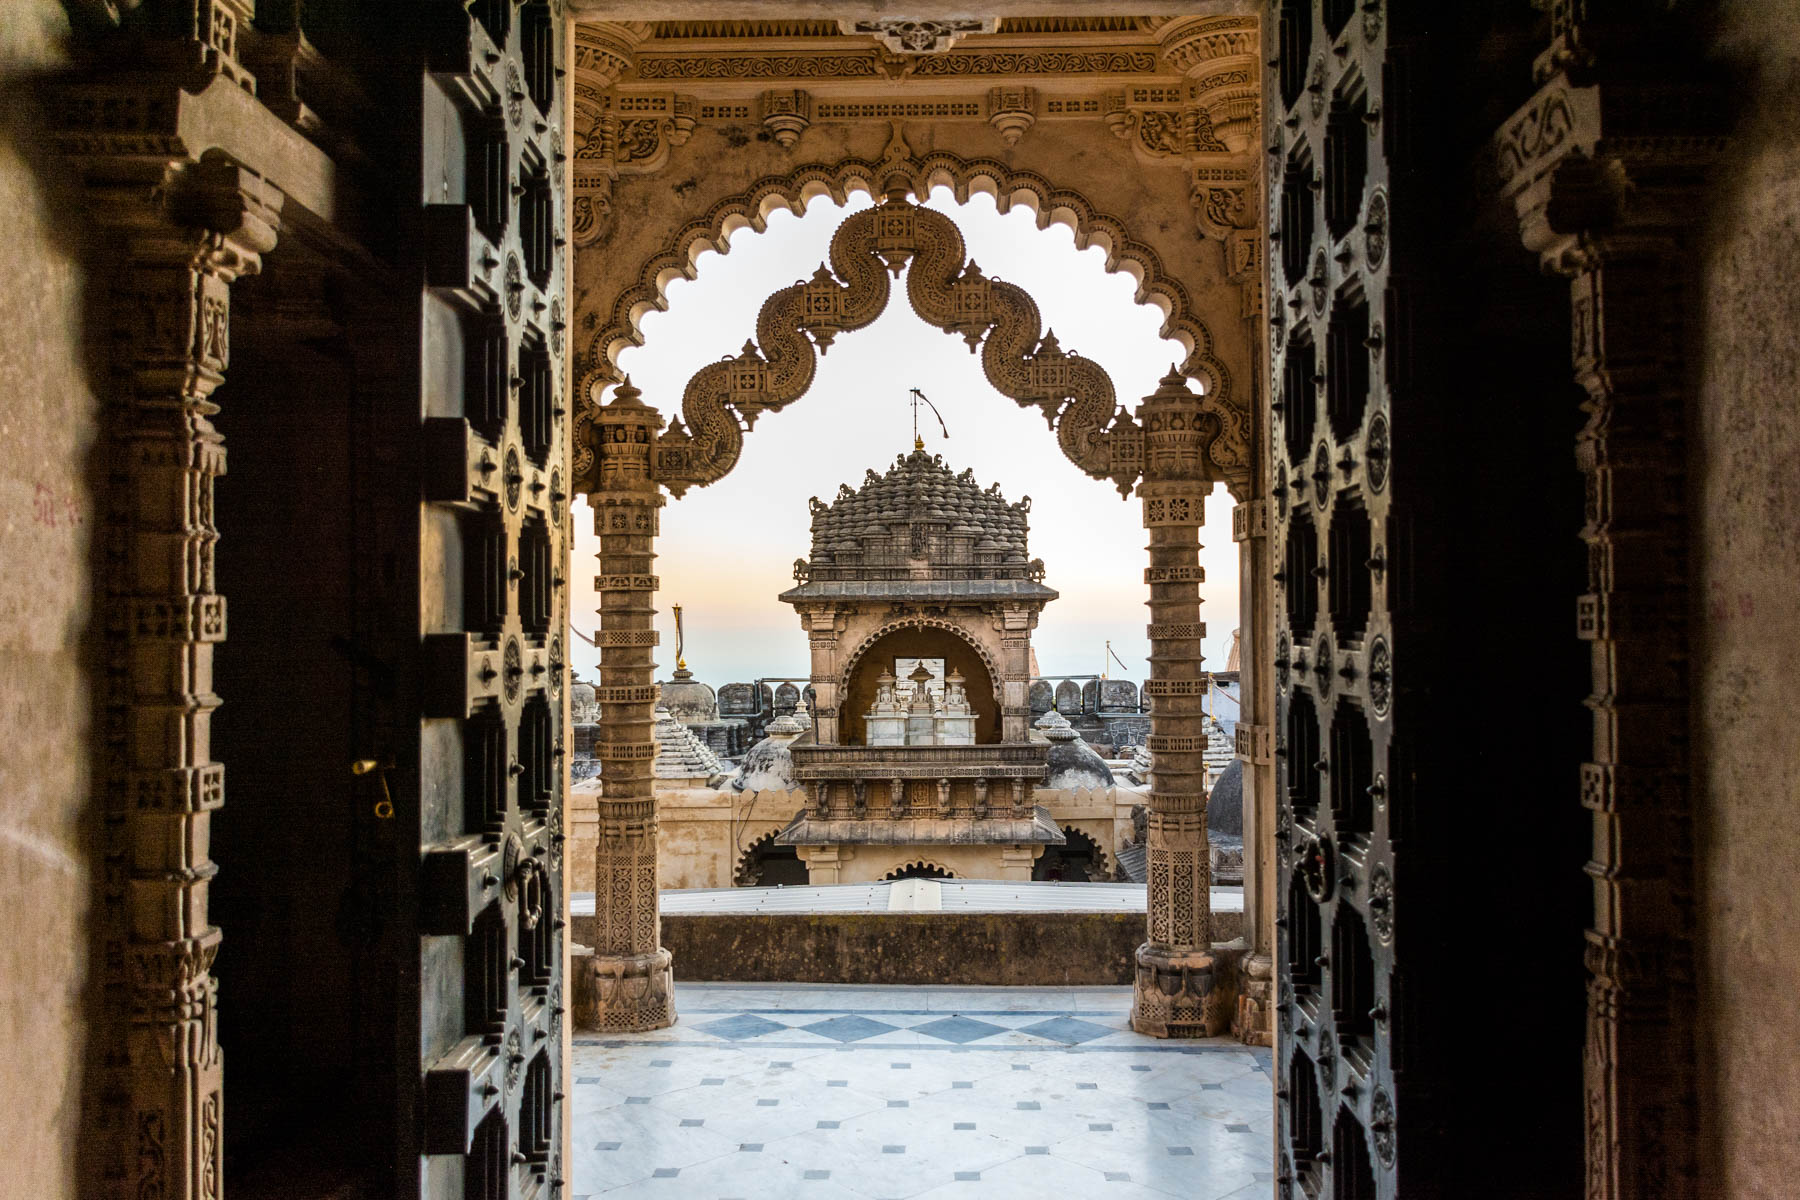 Jain pilgrimage in Palitana, India - Adinath temple doors - Lost With Purpose